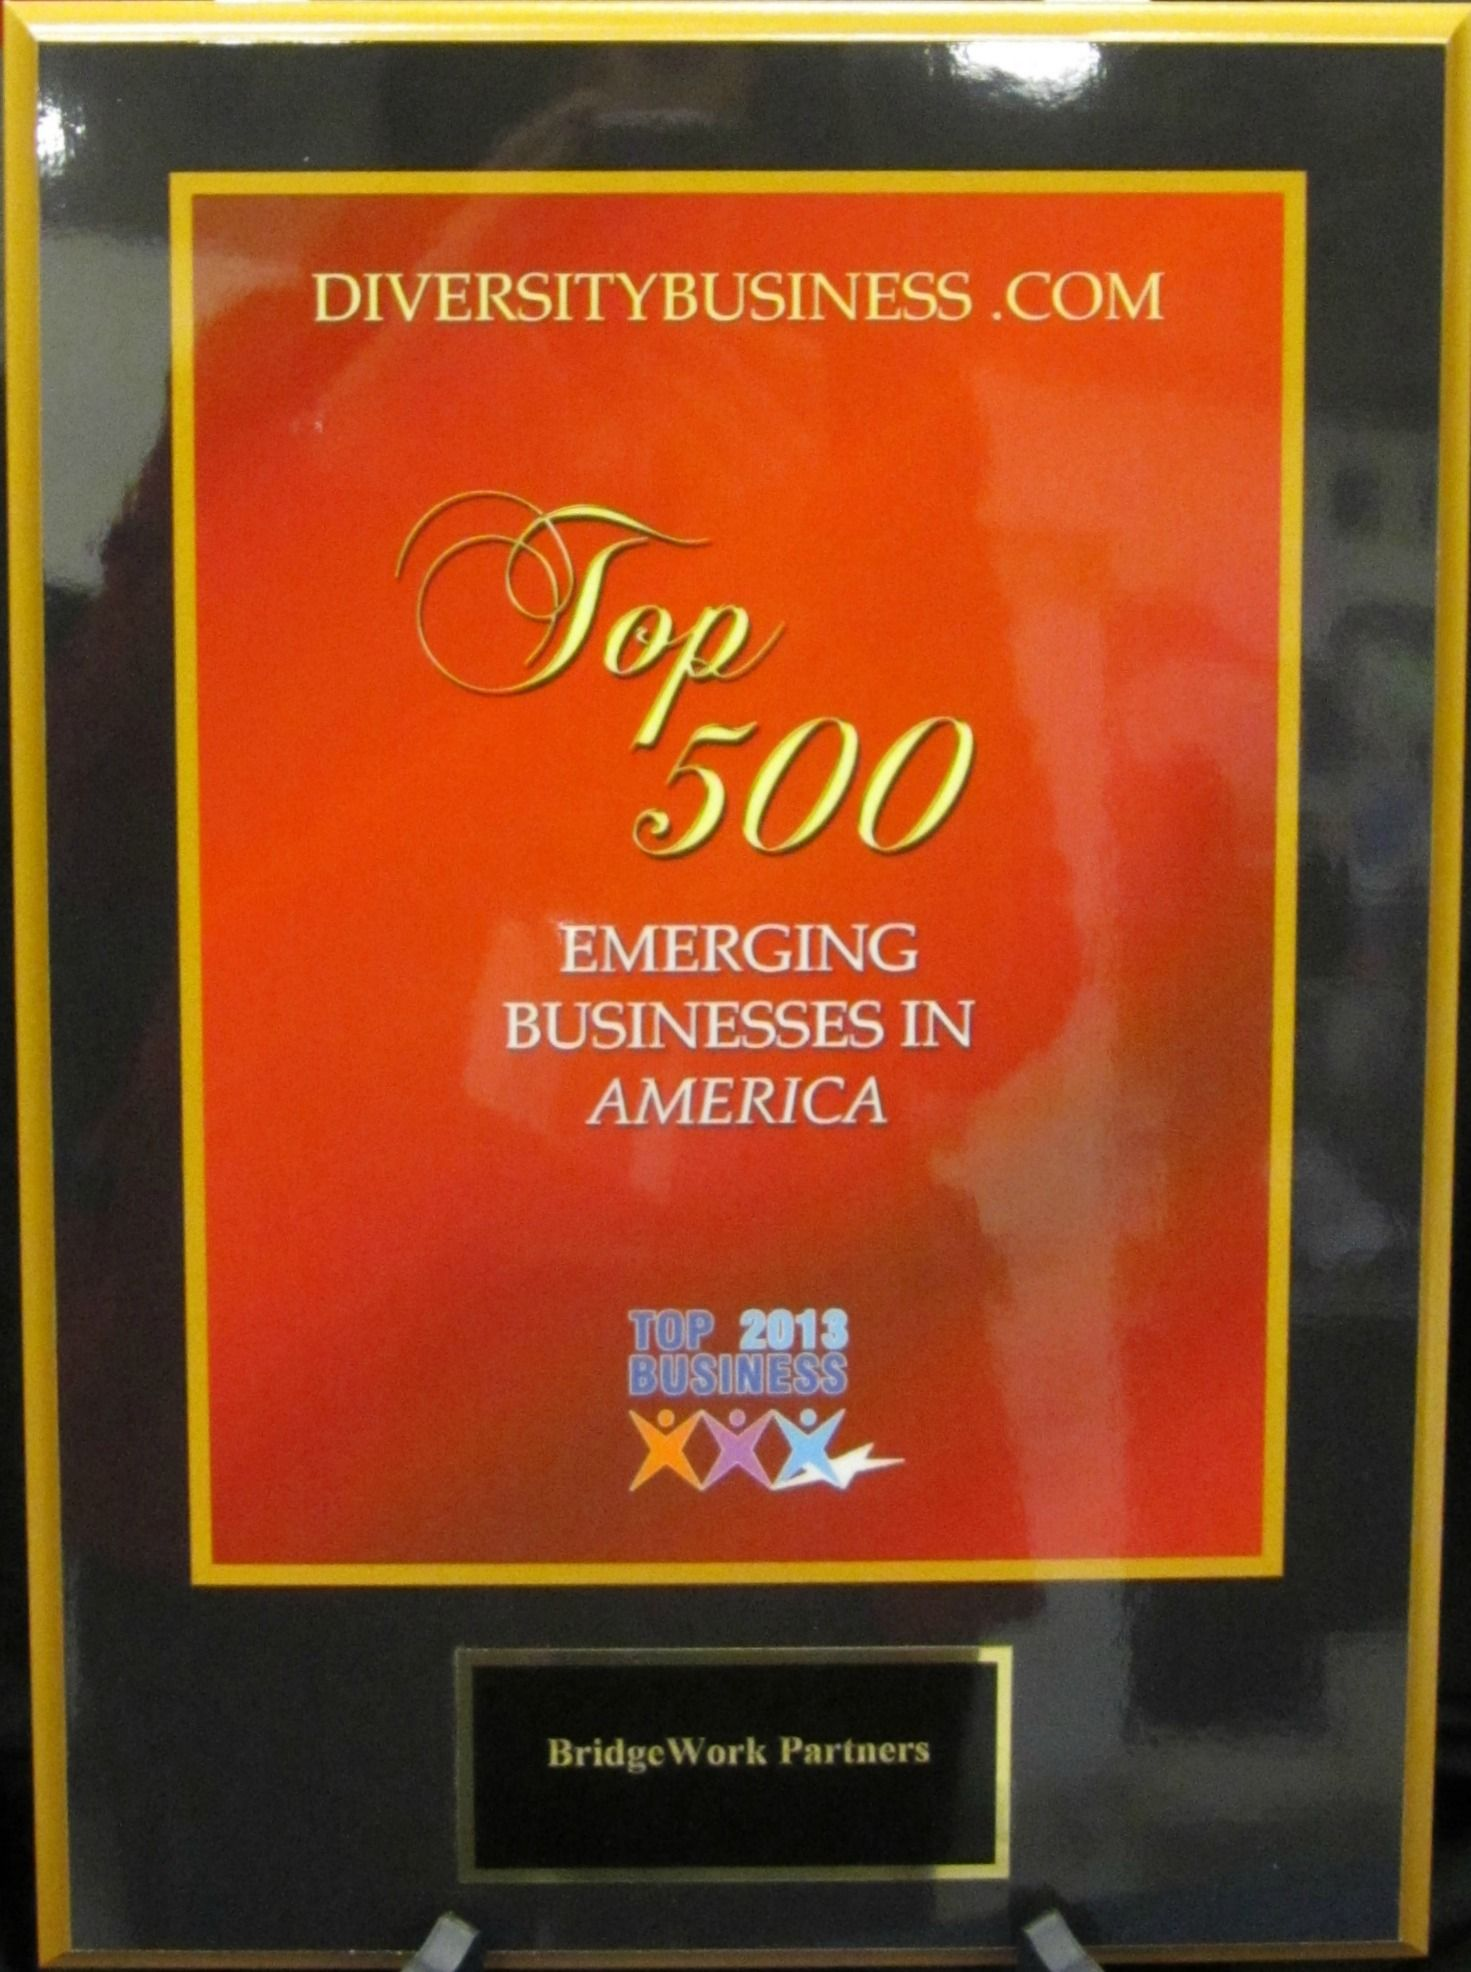 The award received by BridgeWork Partners for Top 500 Emerging Businesses in the U.S. by Diversity Business, 2013.